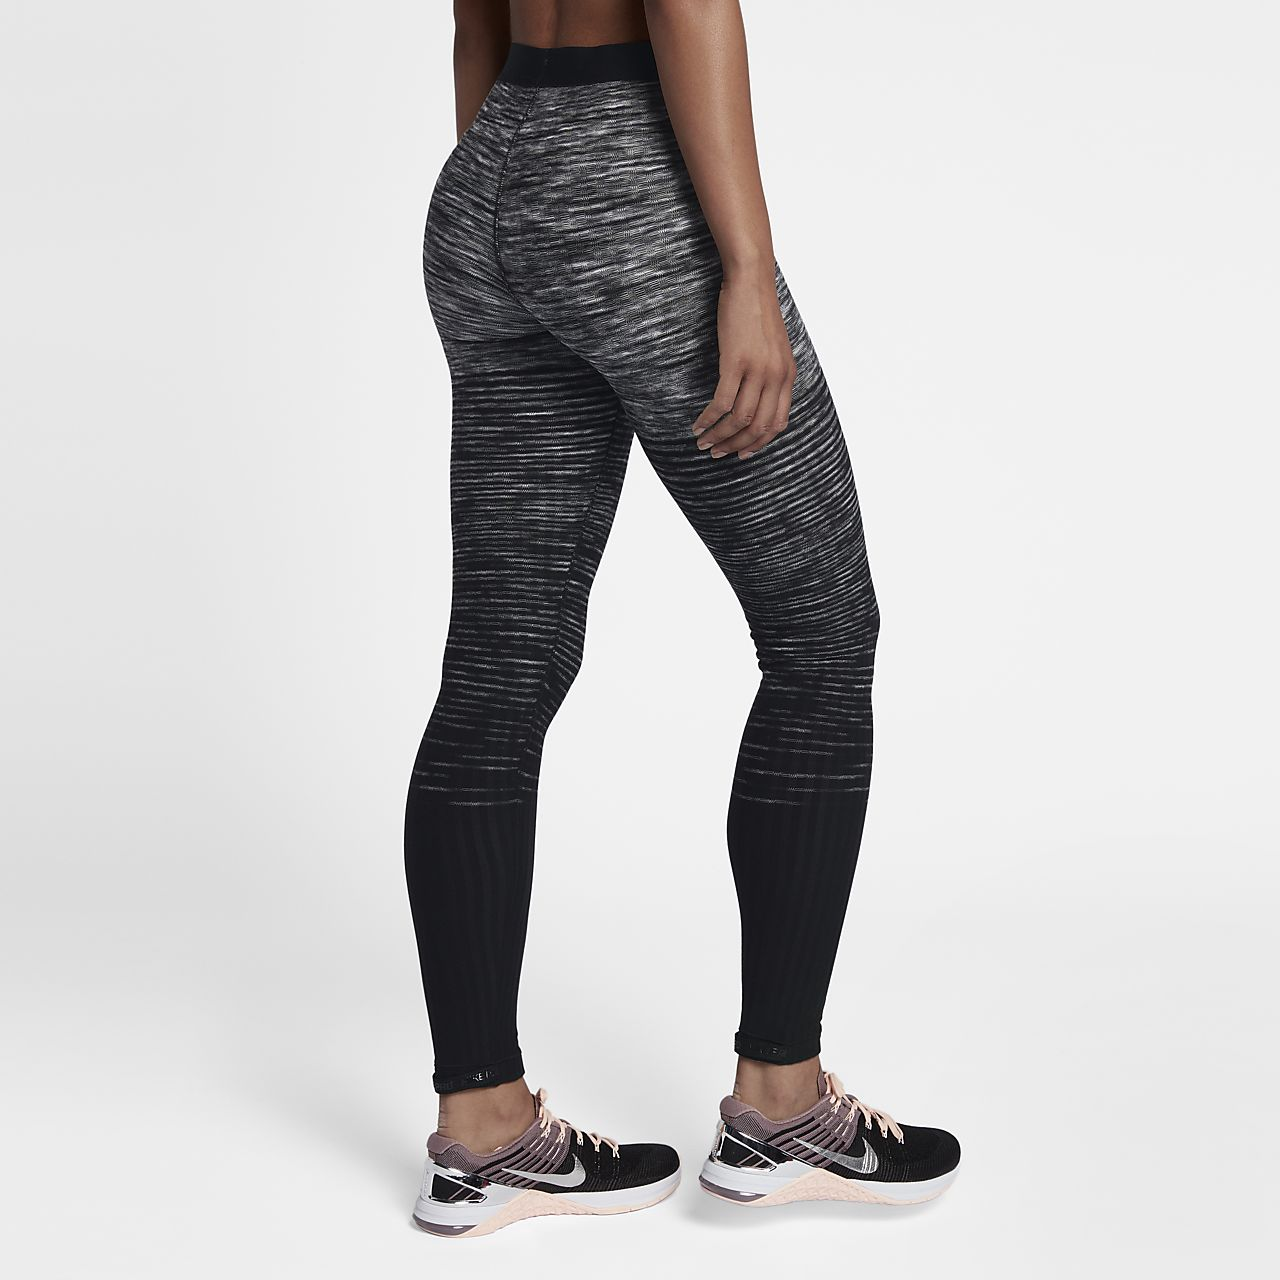 Tidsmæssigt Nike Pro HyperWarm Women's Training Tights. Nike.com IN SW-02